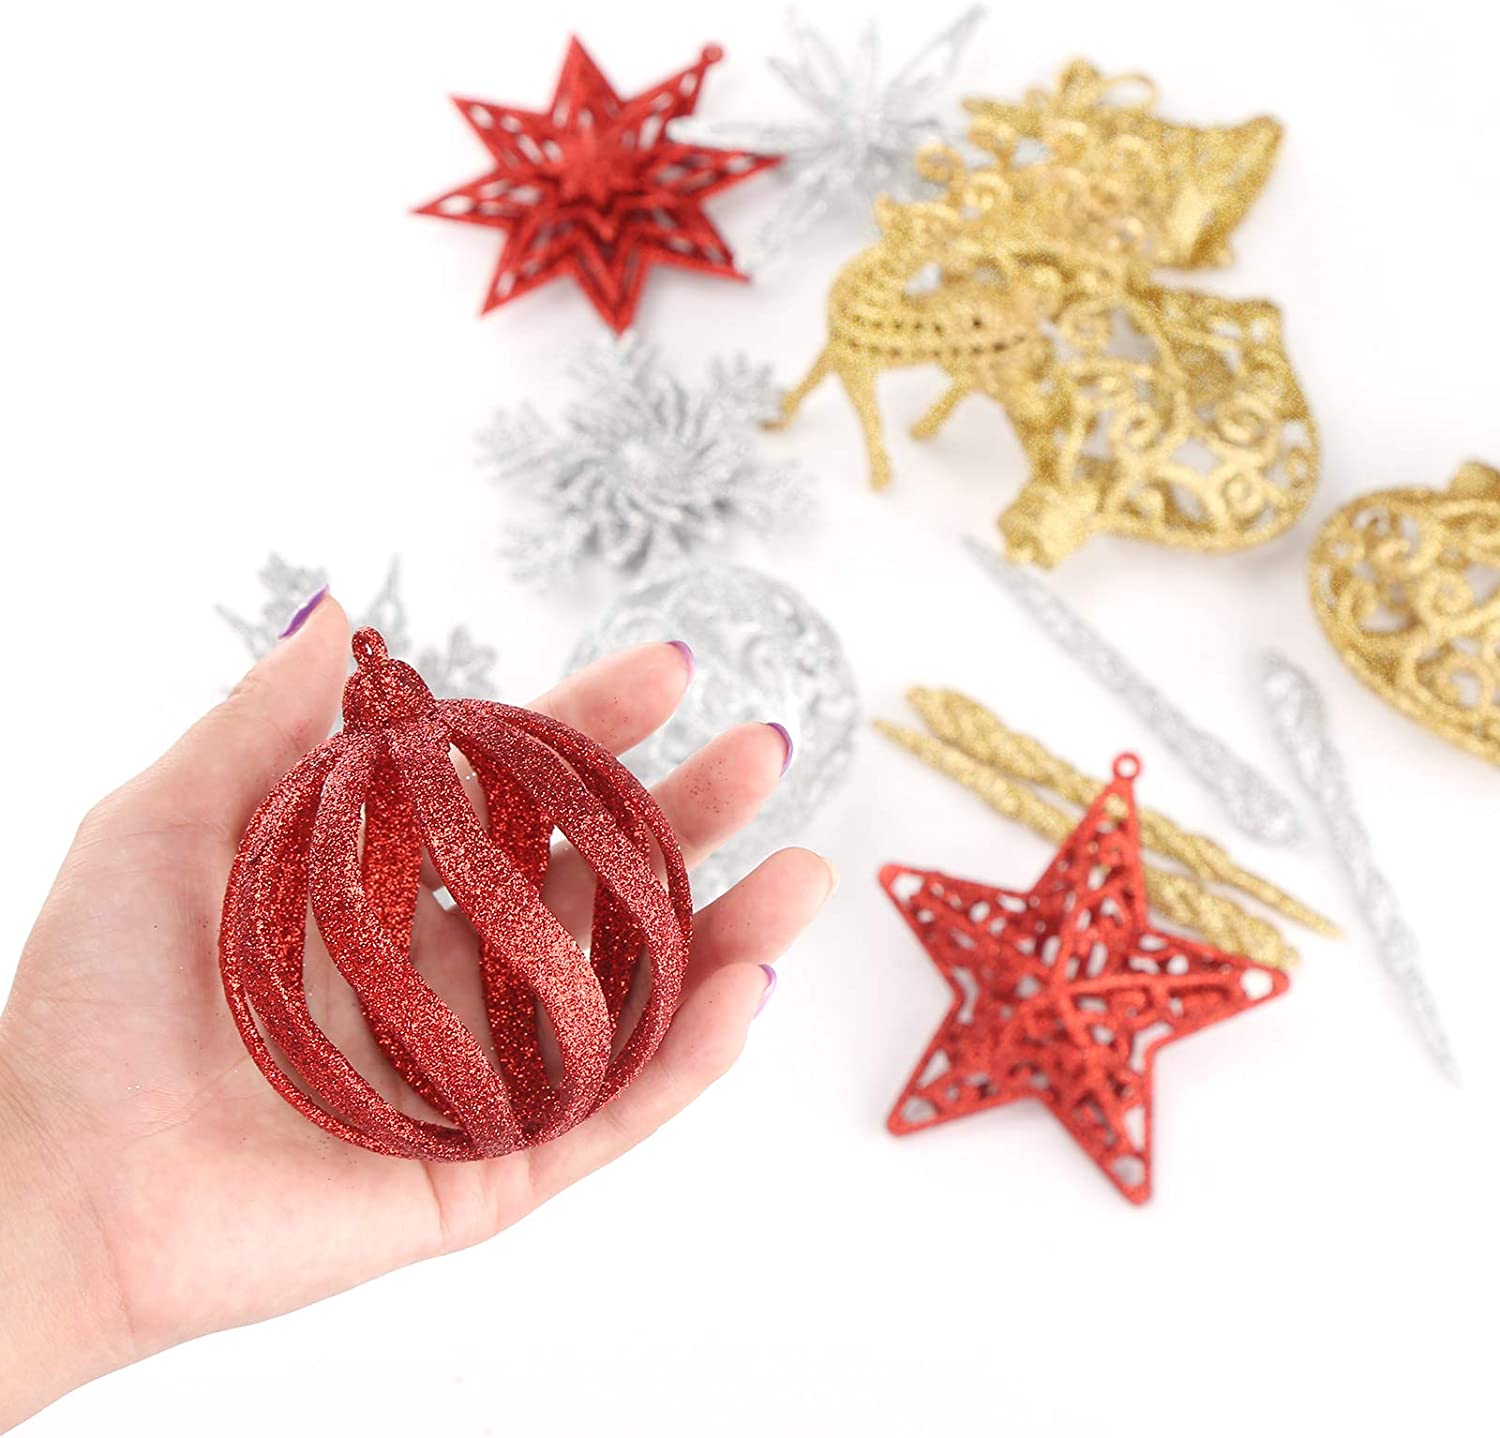 Aitsite 16 Pieces 3D Glitter Snowflake Ornaments 4 Inch Snowflake Plastic Hanging Crafts Snowflake Decoration for Christmas Wedding Party /& Home Decorations Gold